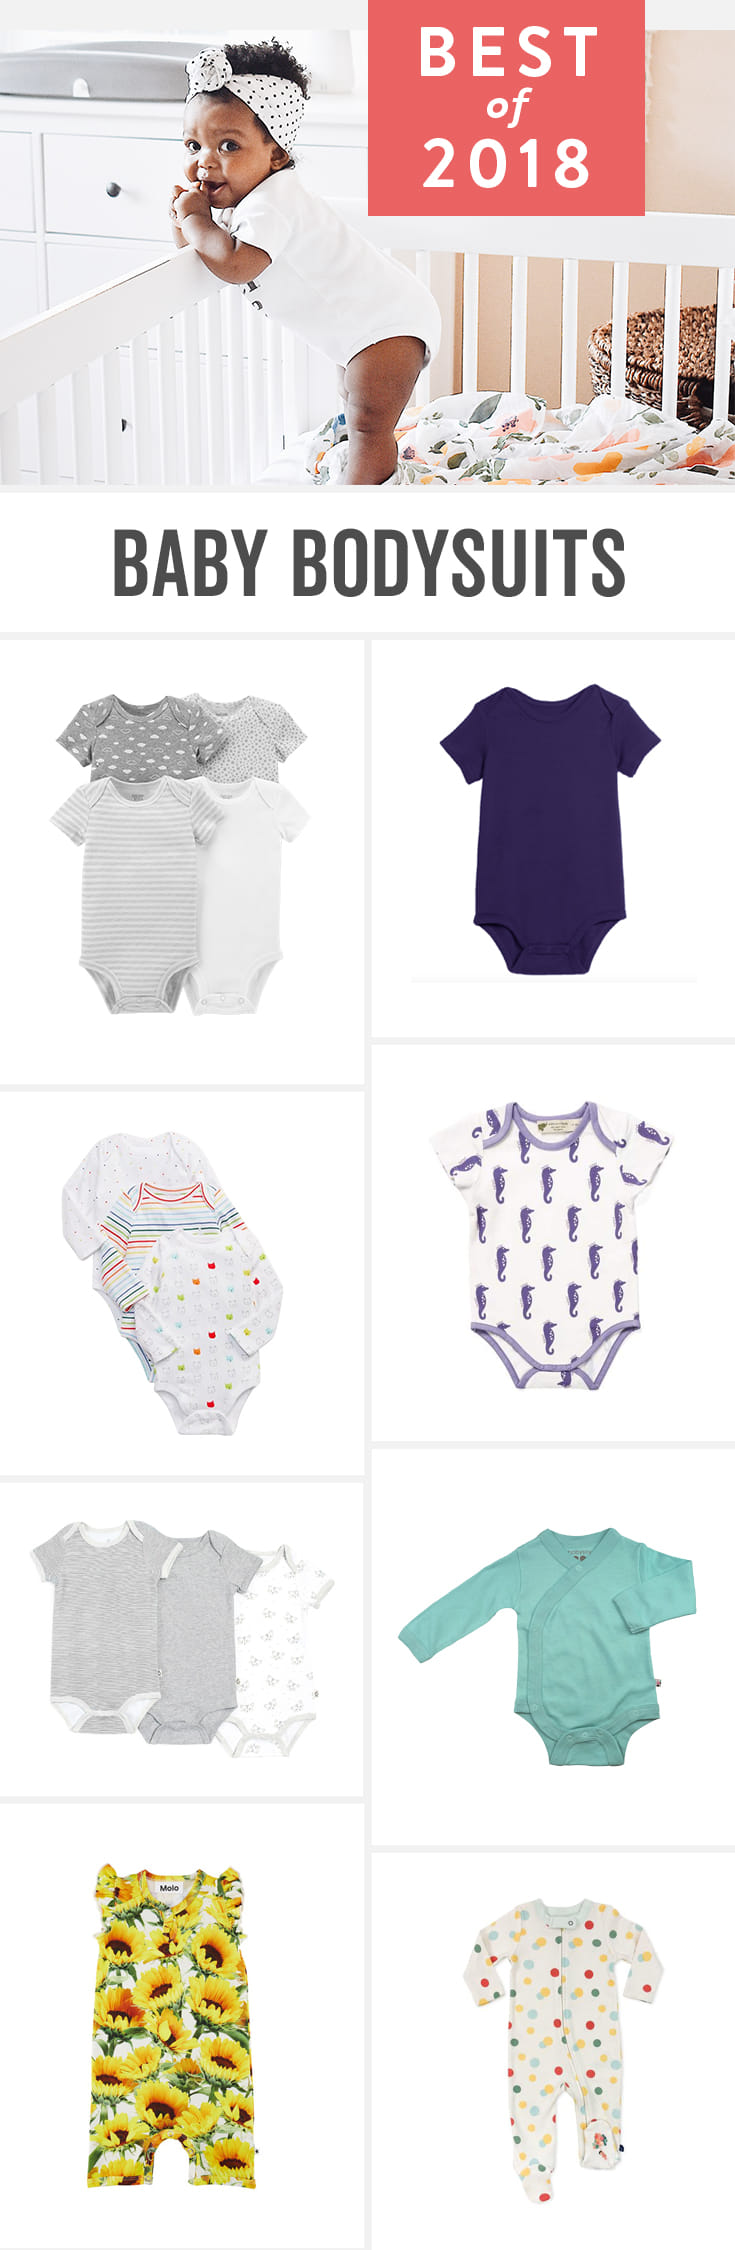 Babylist is the baby registry that lets you add any item from any store to one beautiful registry including the best baby onesies and bodysuits for boys and for girls. Unisex options, gender neutral ideas, and options for winter and summer too.